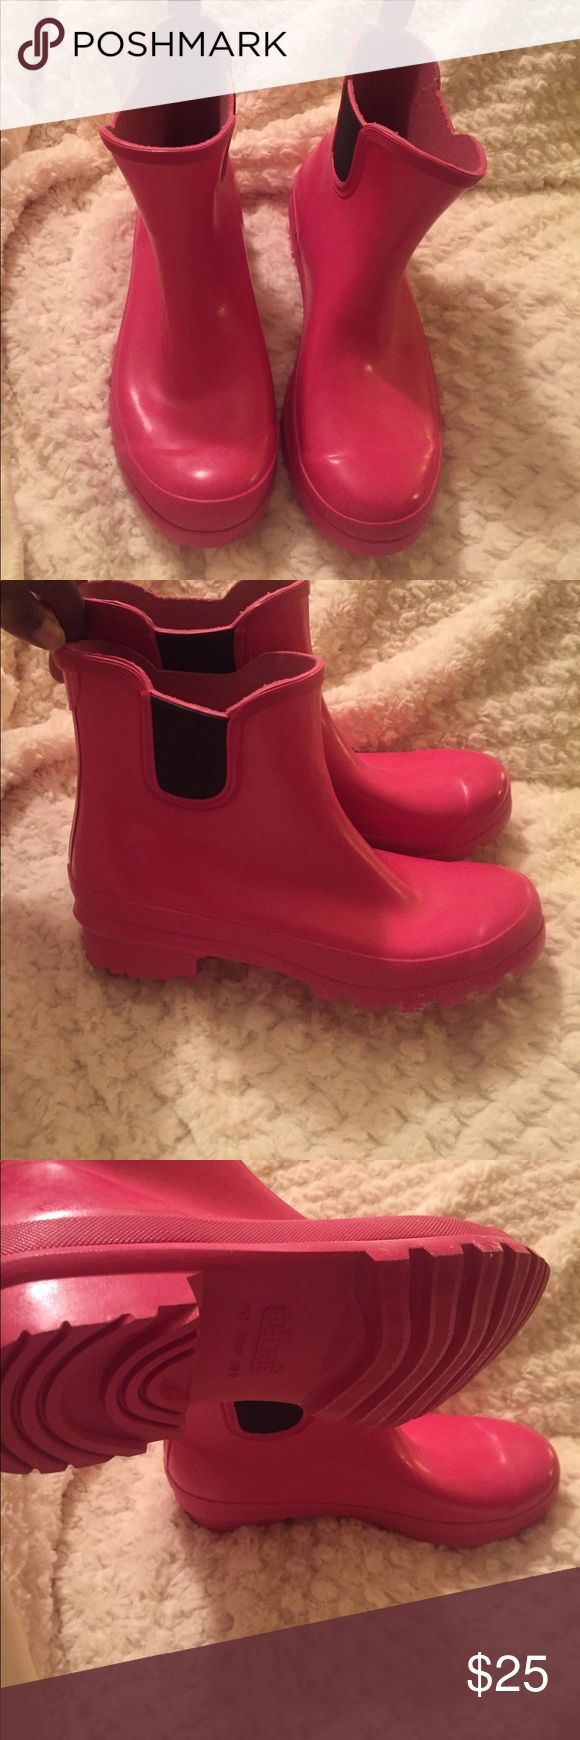 Hot Pink Polar Ankle Rain Boot Beautiful rain boot from Polar which are in excellent condition and never worn. Also has it in storage bag. Small elastic sides for entry ease and bottom grip soles for non slipping. Polar Boots Shoes Winter & Rain Boots